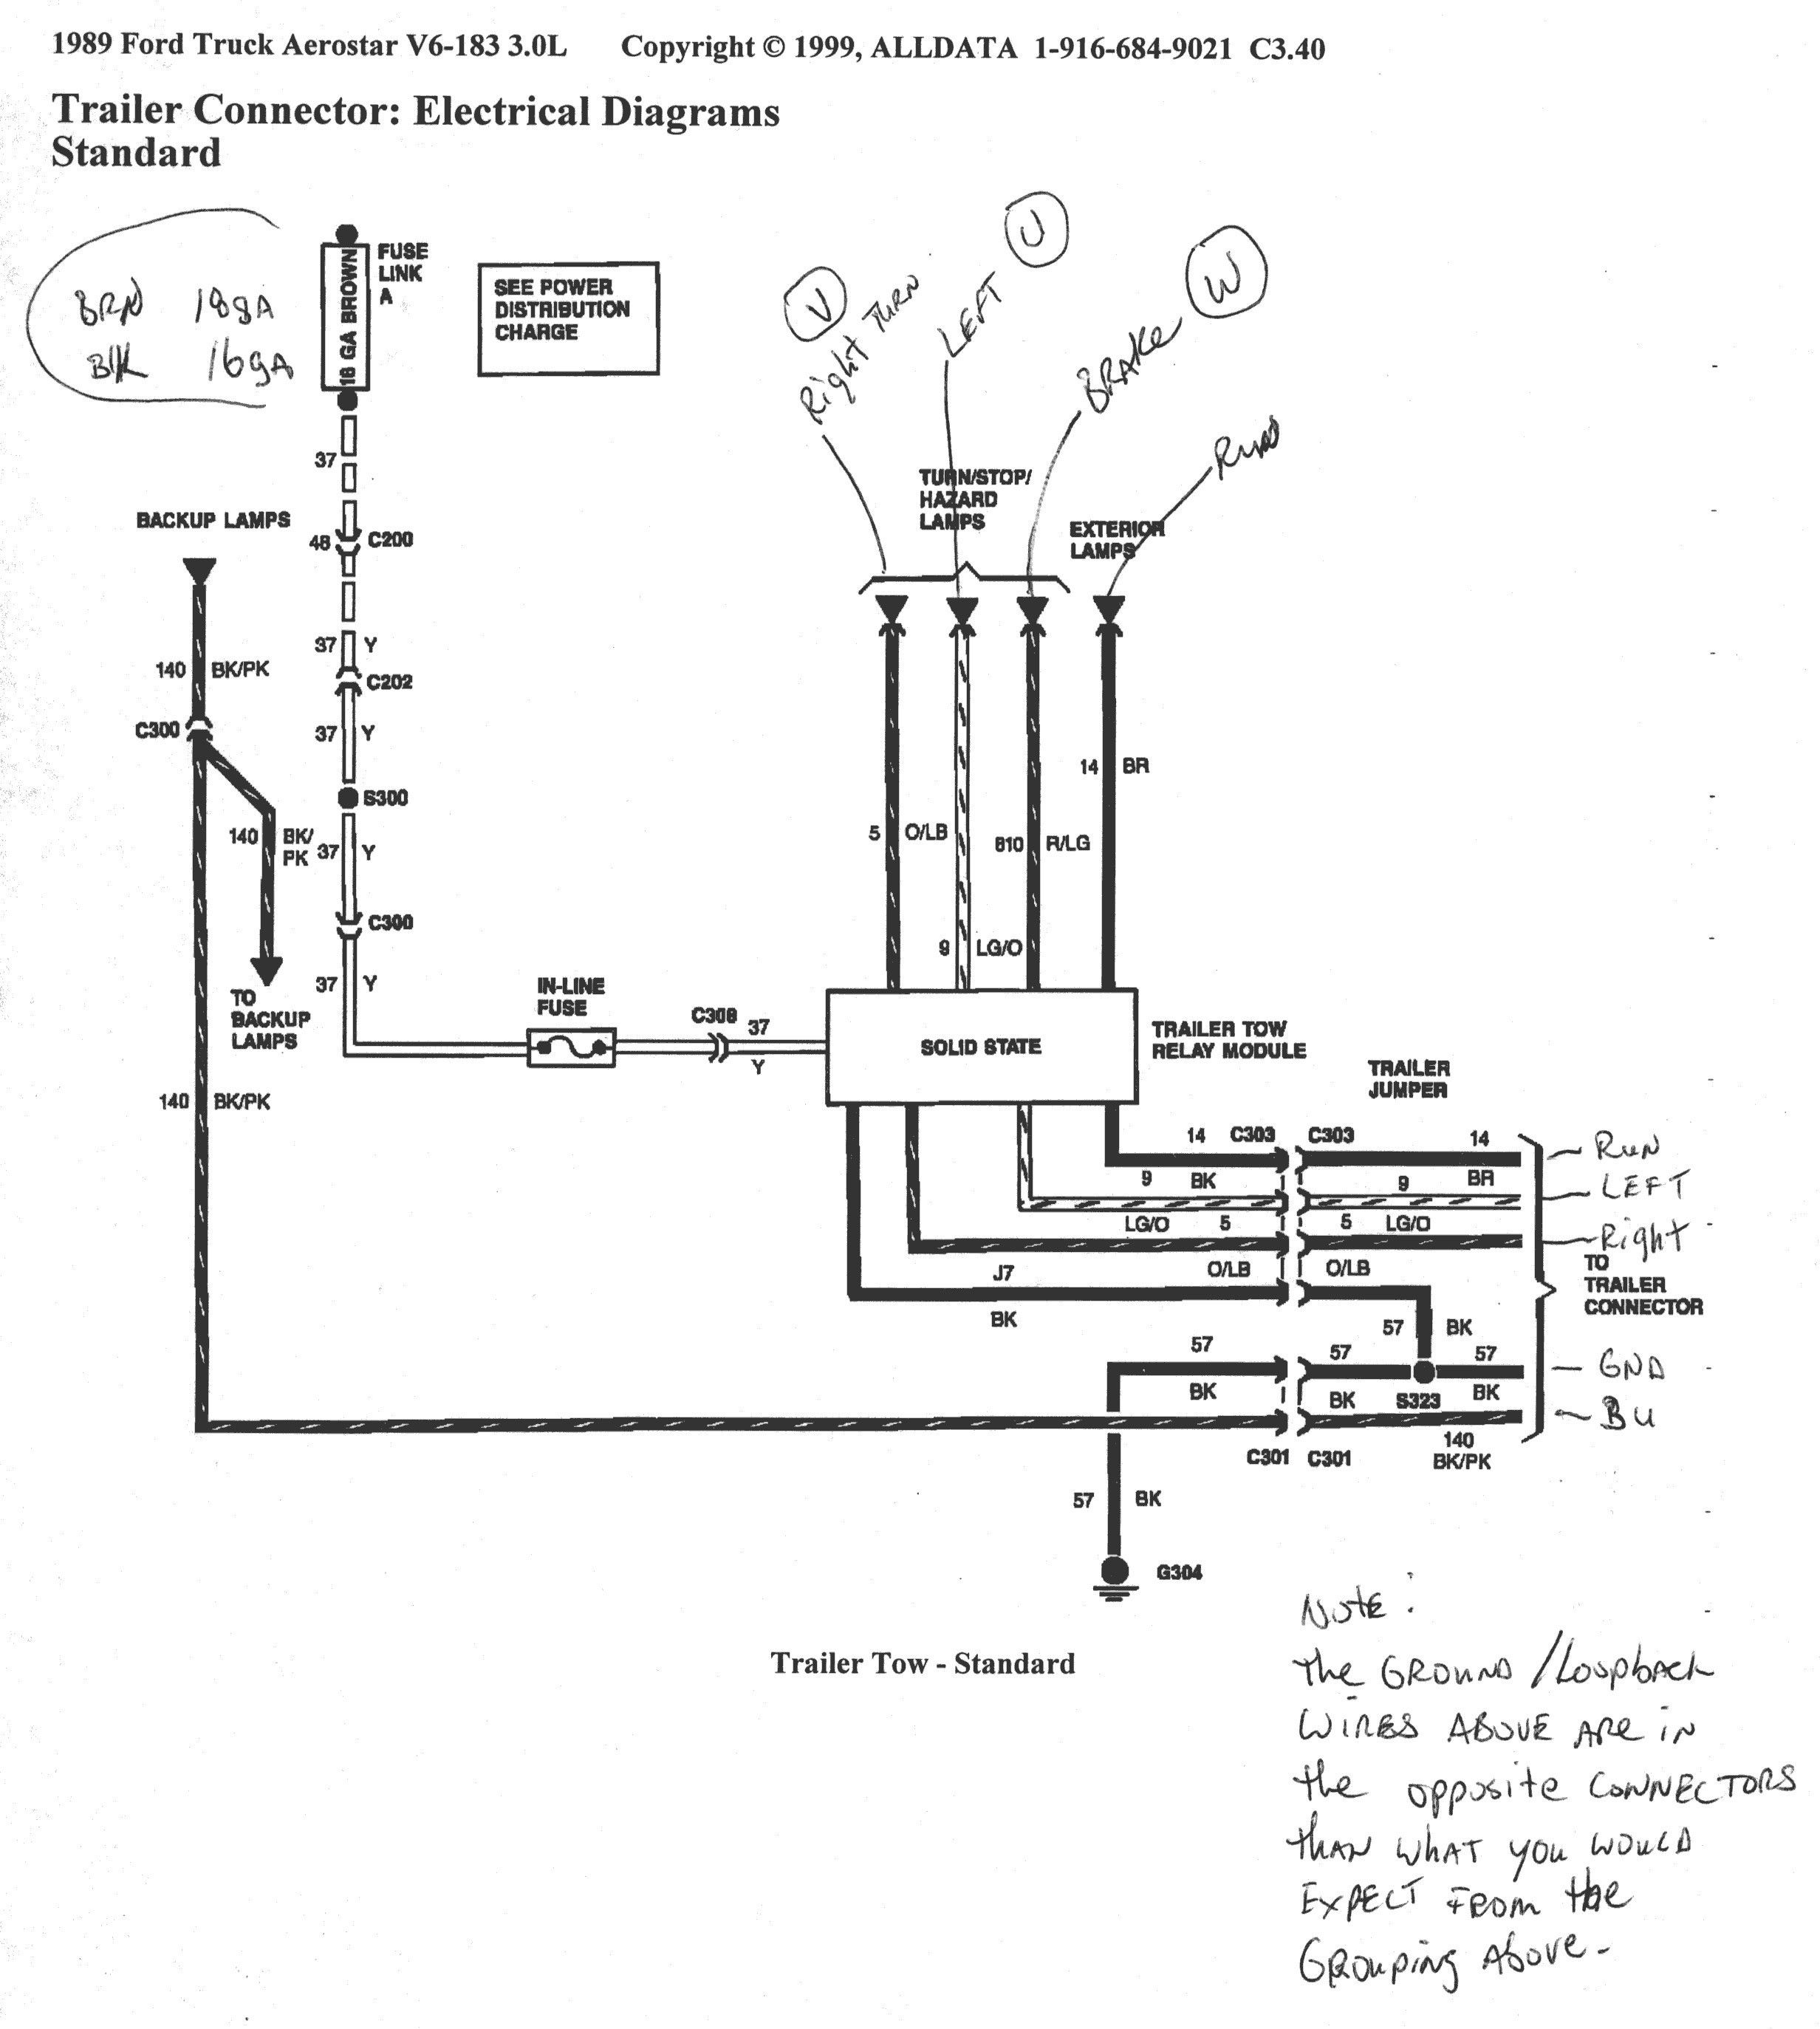 1995 Ford F150 Parts Diagram Trailer Wiring Diagram Diagram Electrical Diagram